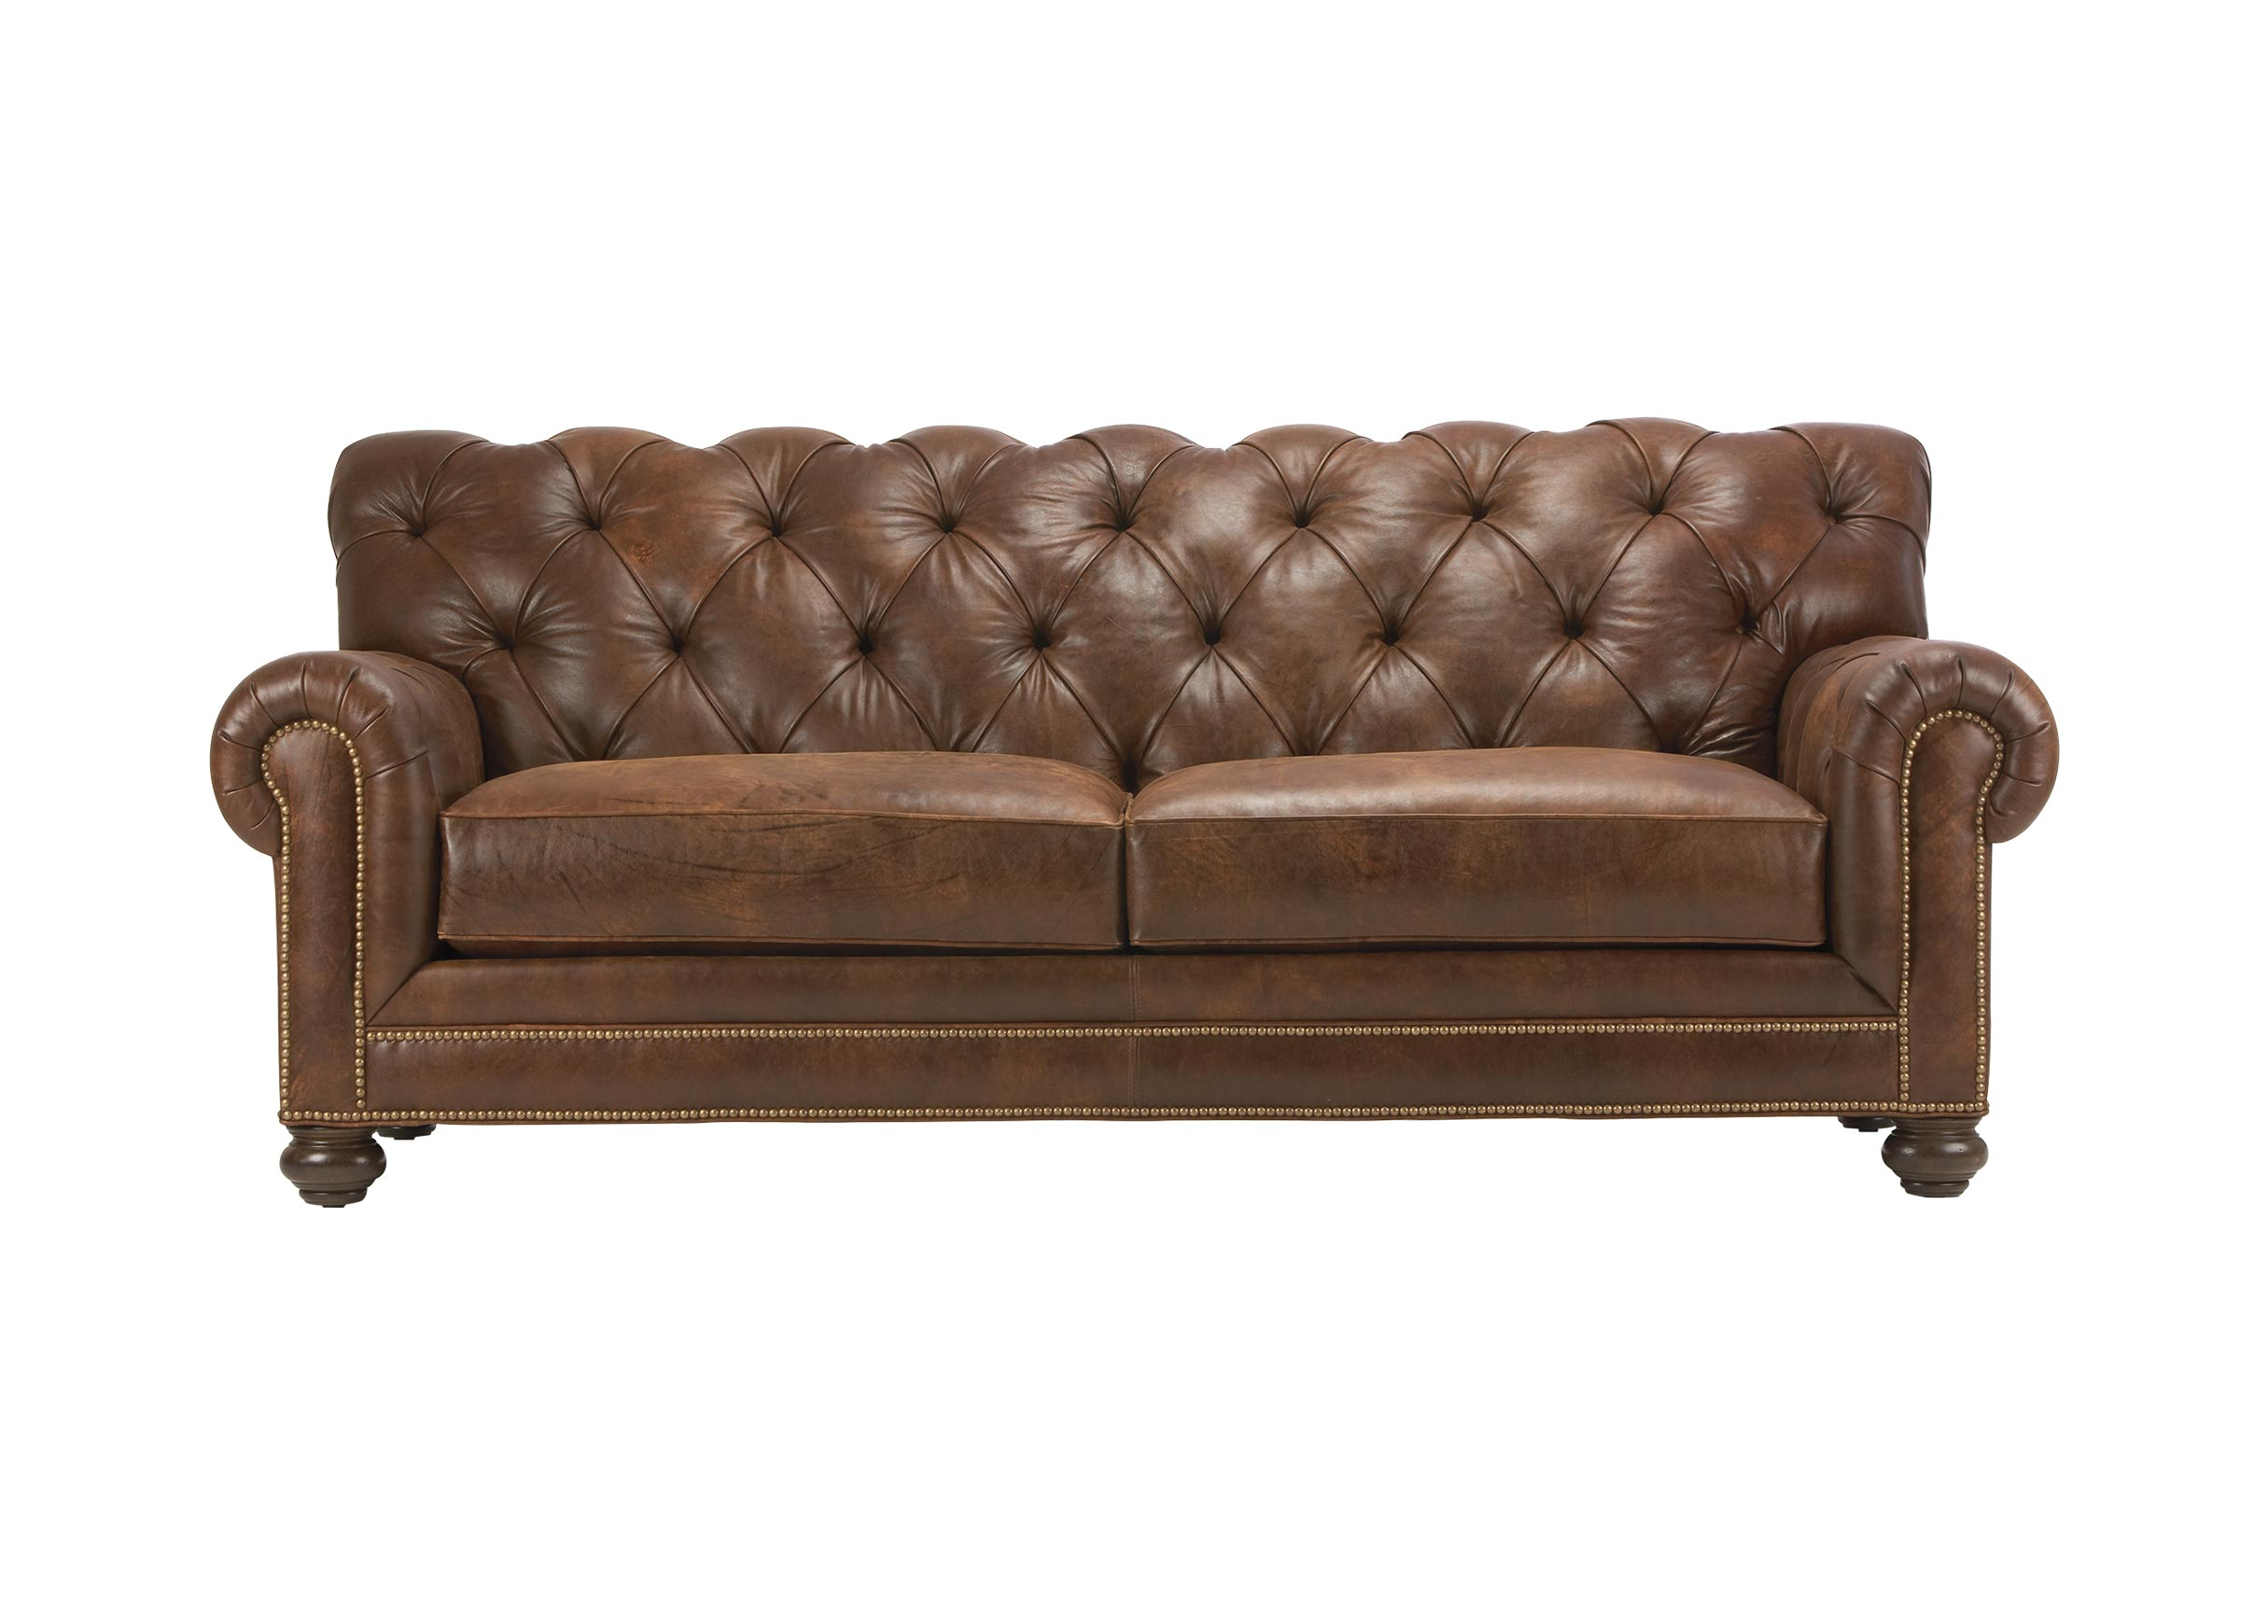 leather office couch. images chadwick leather sofa large_gray office couch